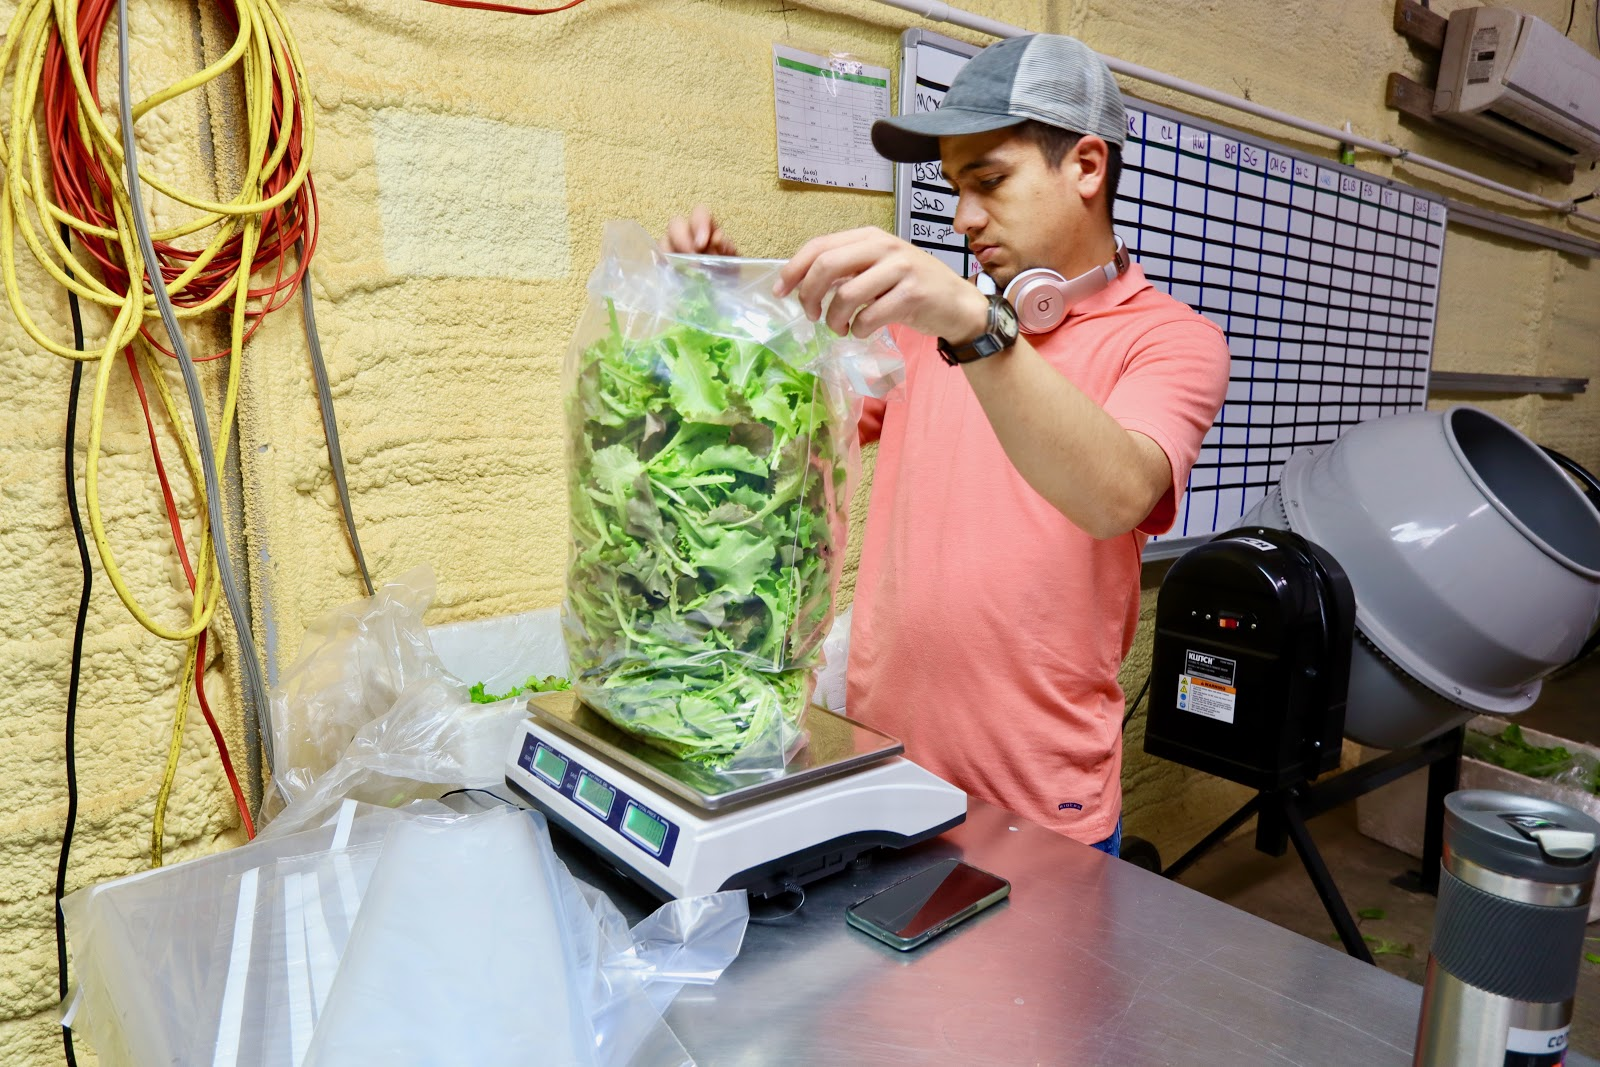 A Southern Organics staff member bags a two-pound bag of greens in the Southern Organics warehouse. (Photo by Christine Hull for Bham Now)